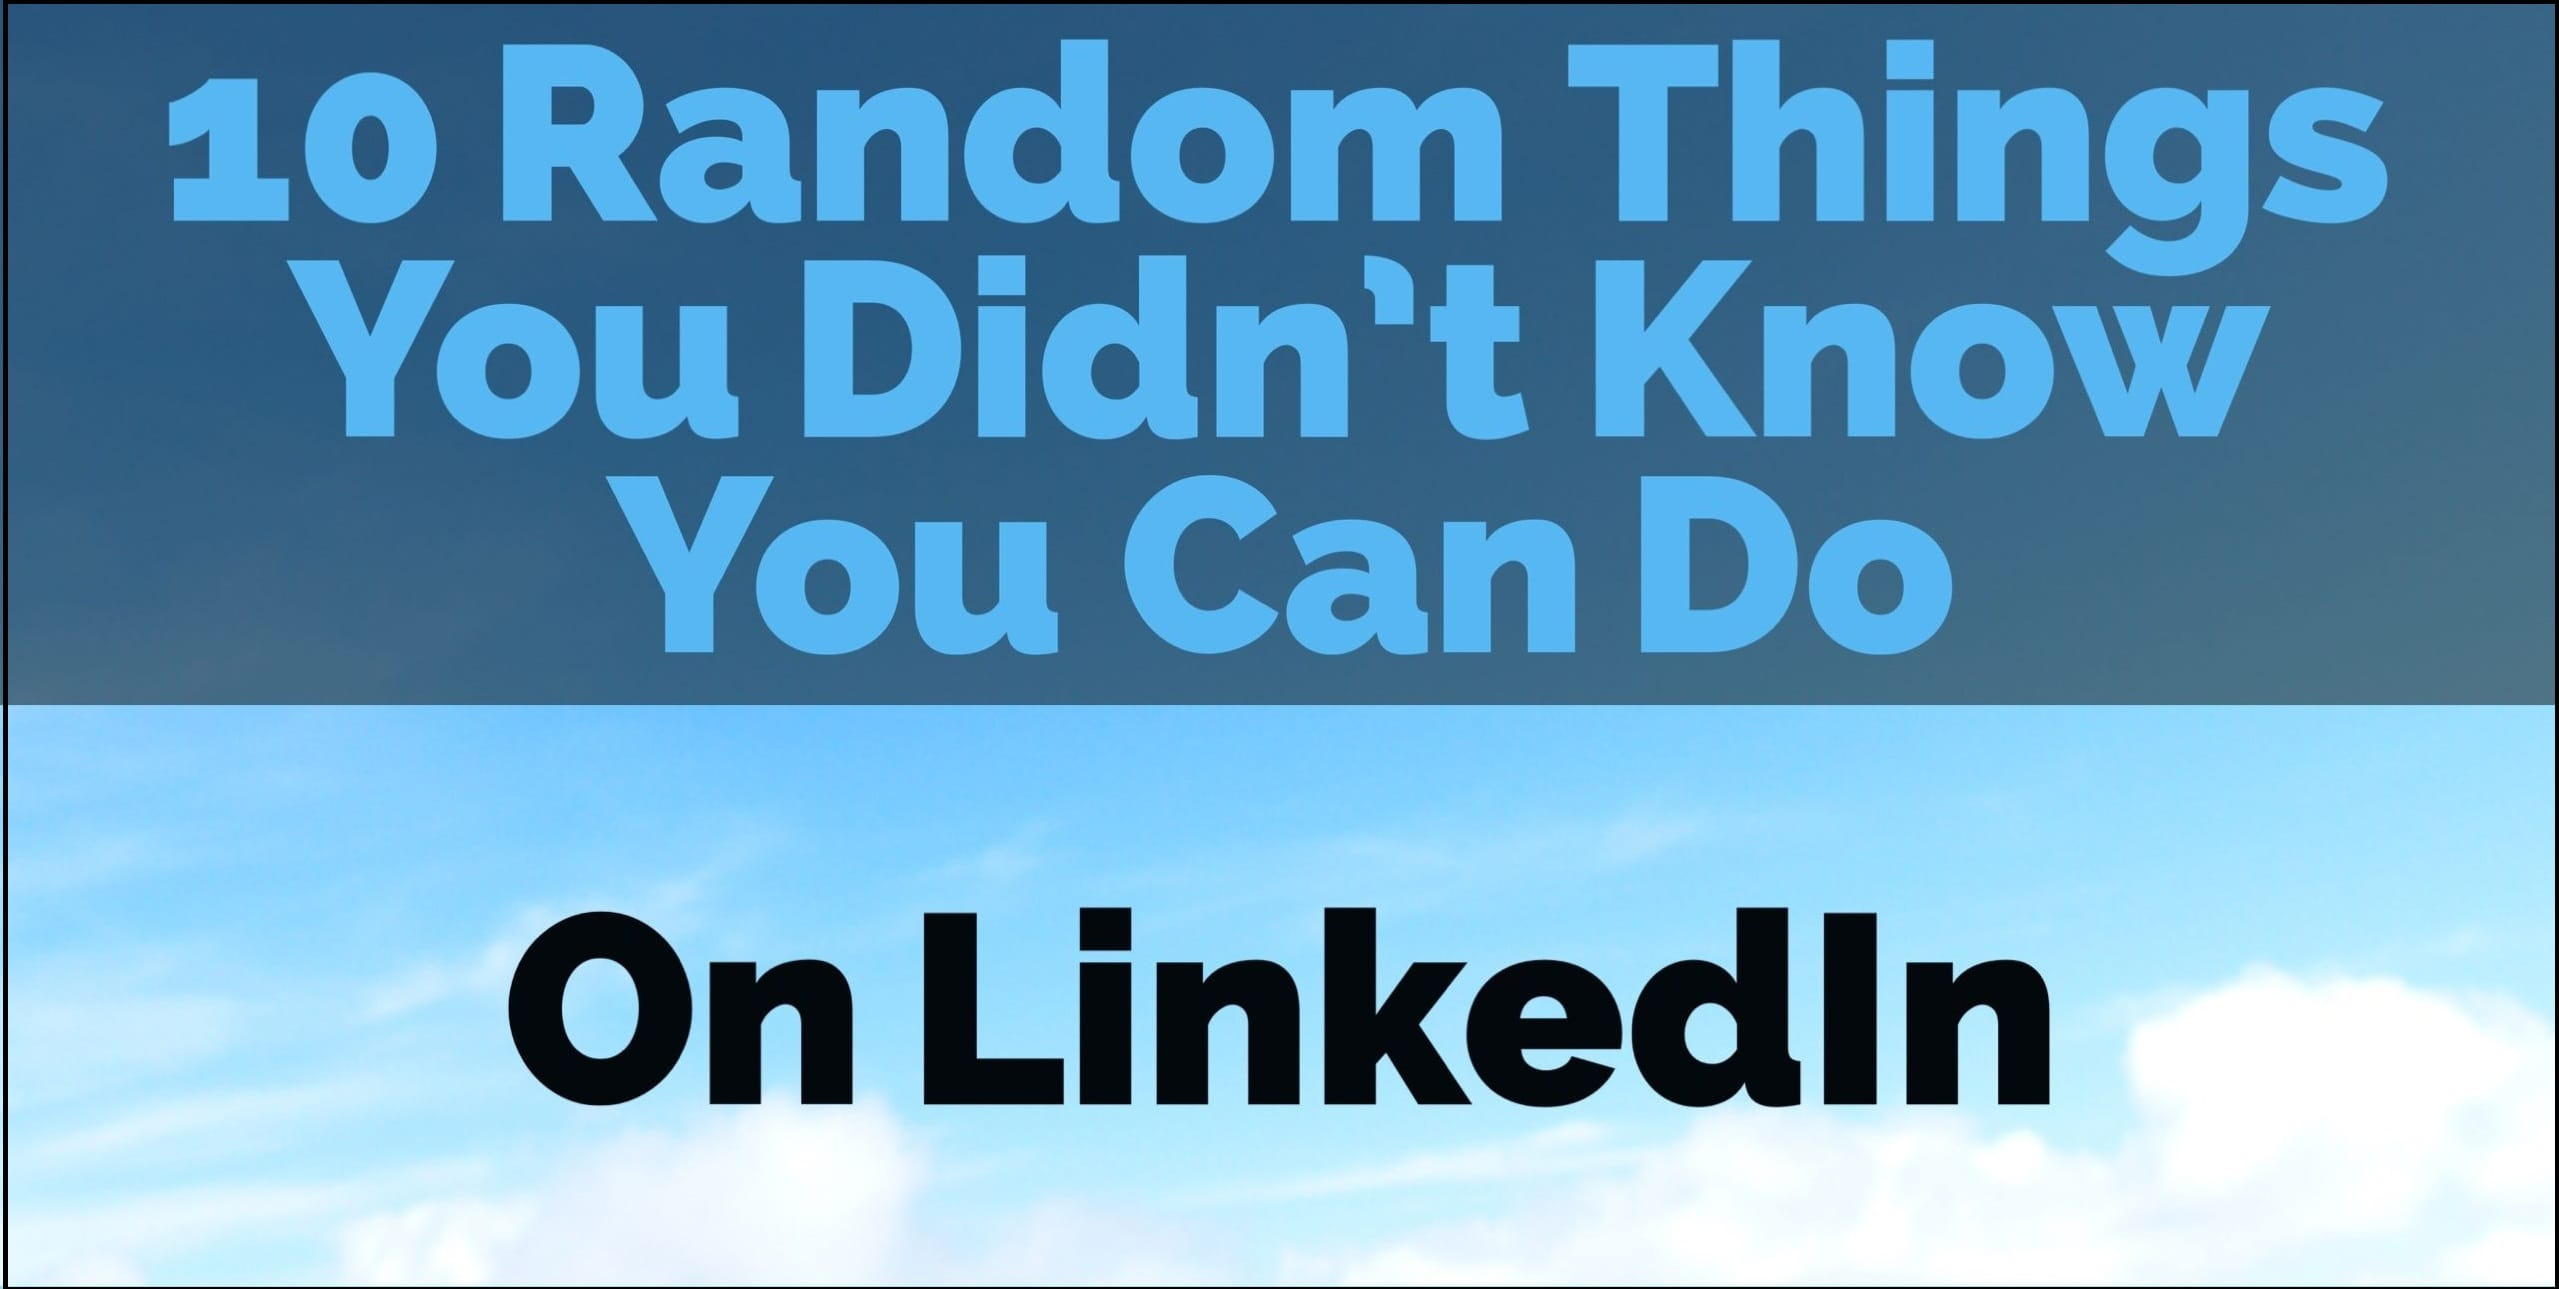 10 Random Things You Didn't Know You Can Do On LinkedIn